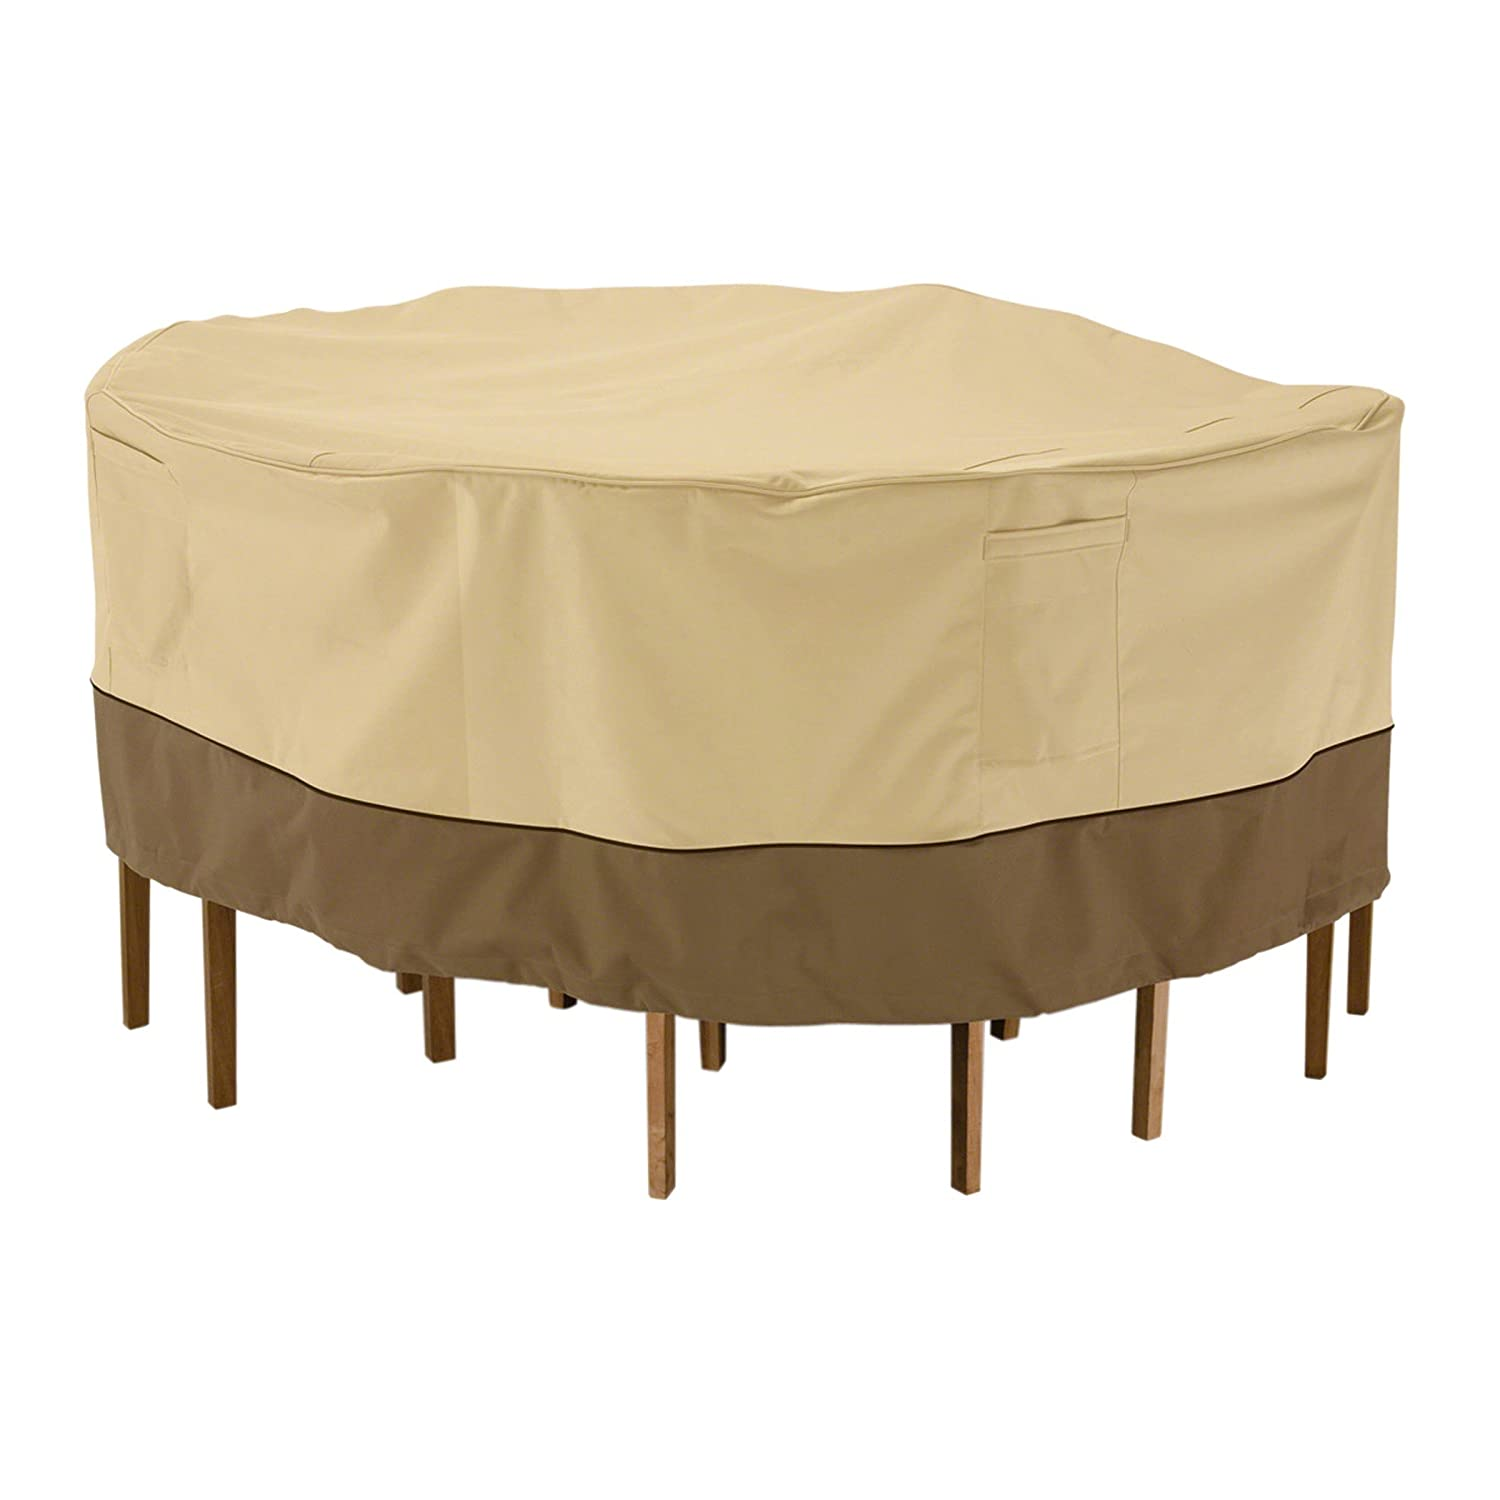 Amazon Furniture Set Covers Patio Lawn & Garden